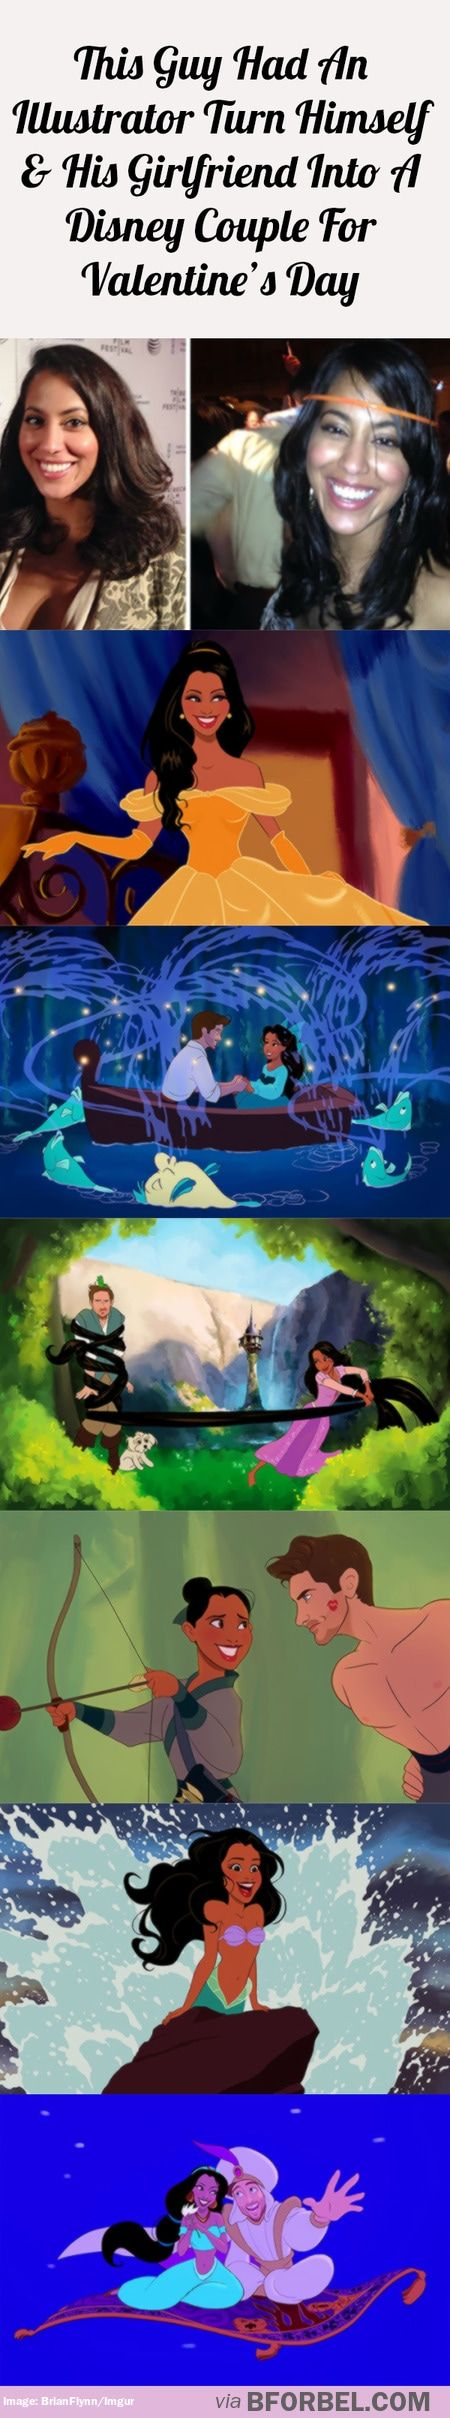 This guy had an illustrator turn himself and his girlfriend into a Disney couple for Valentine's Day…